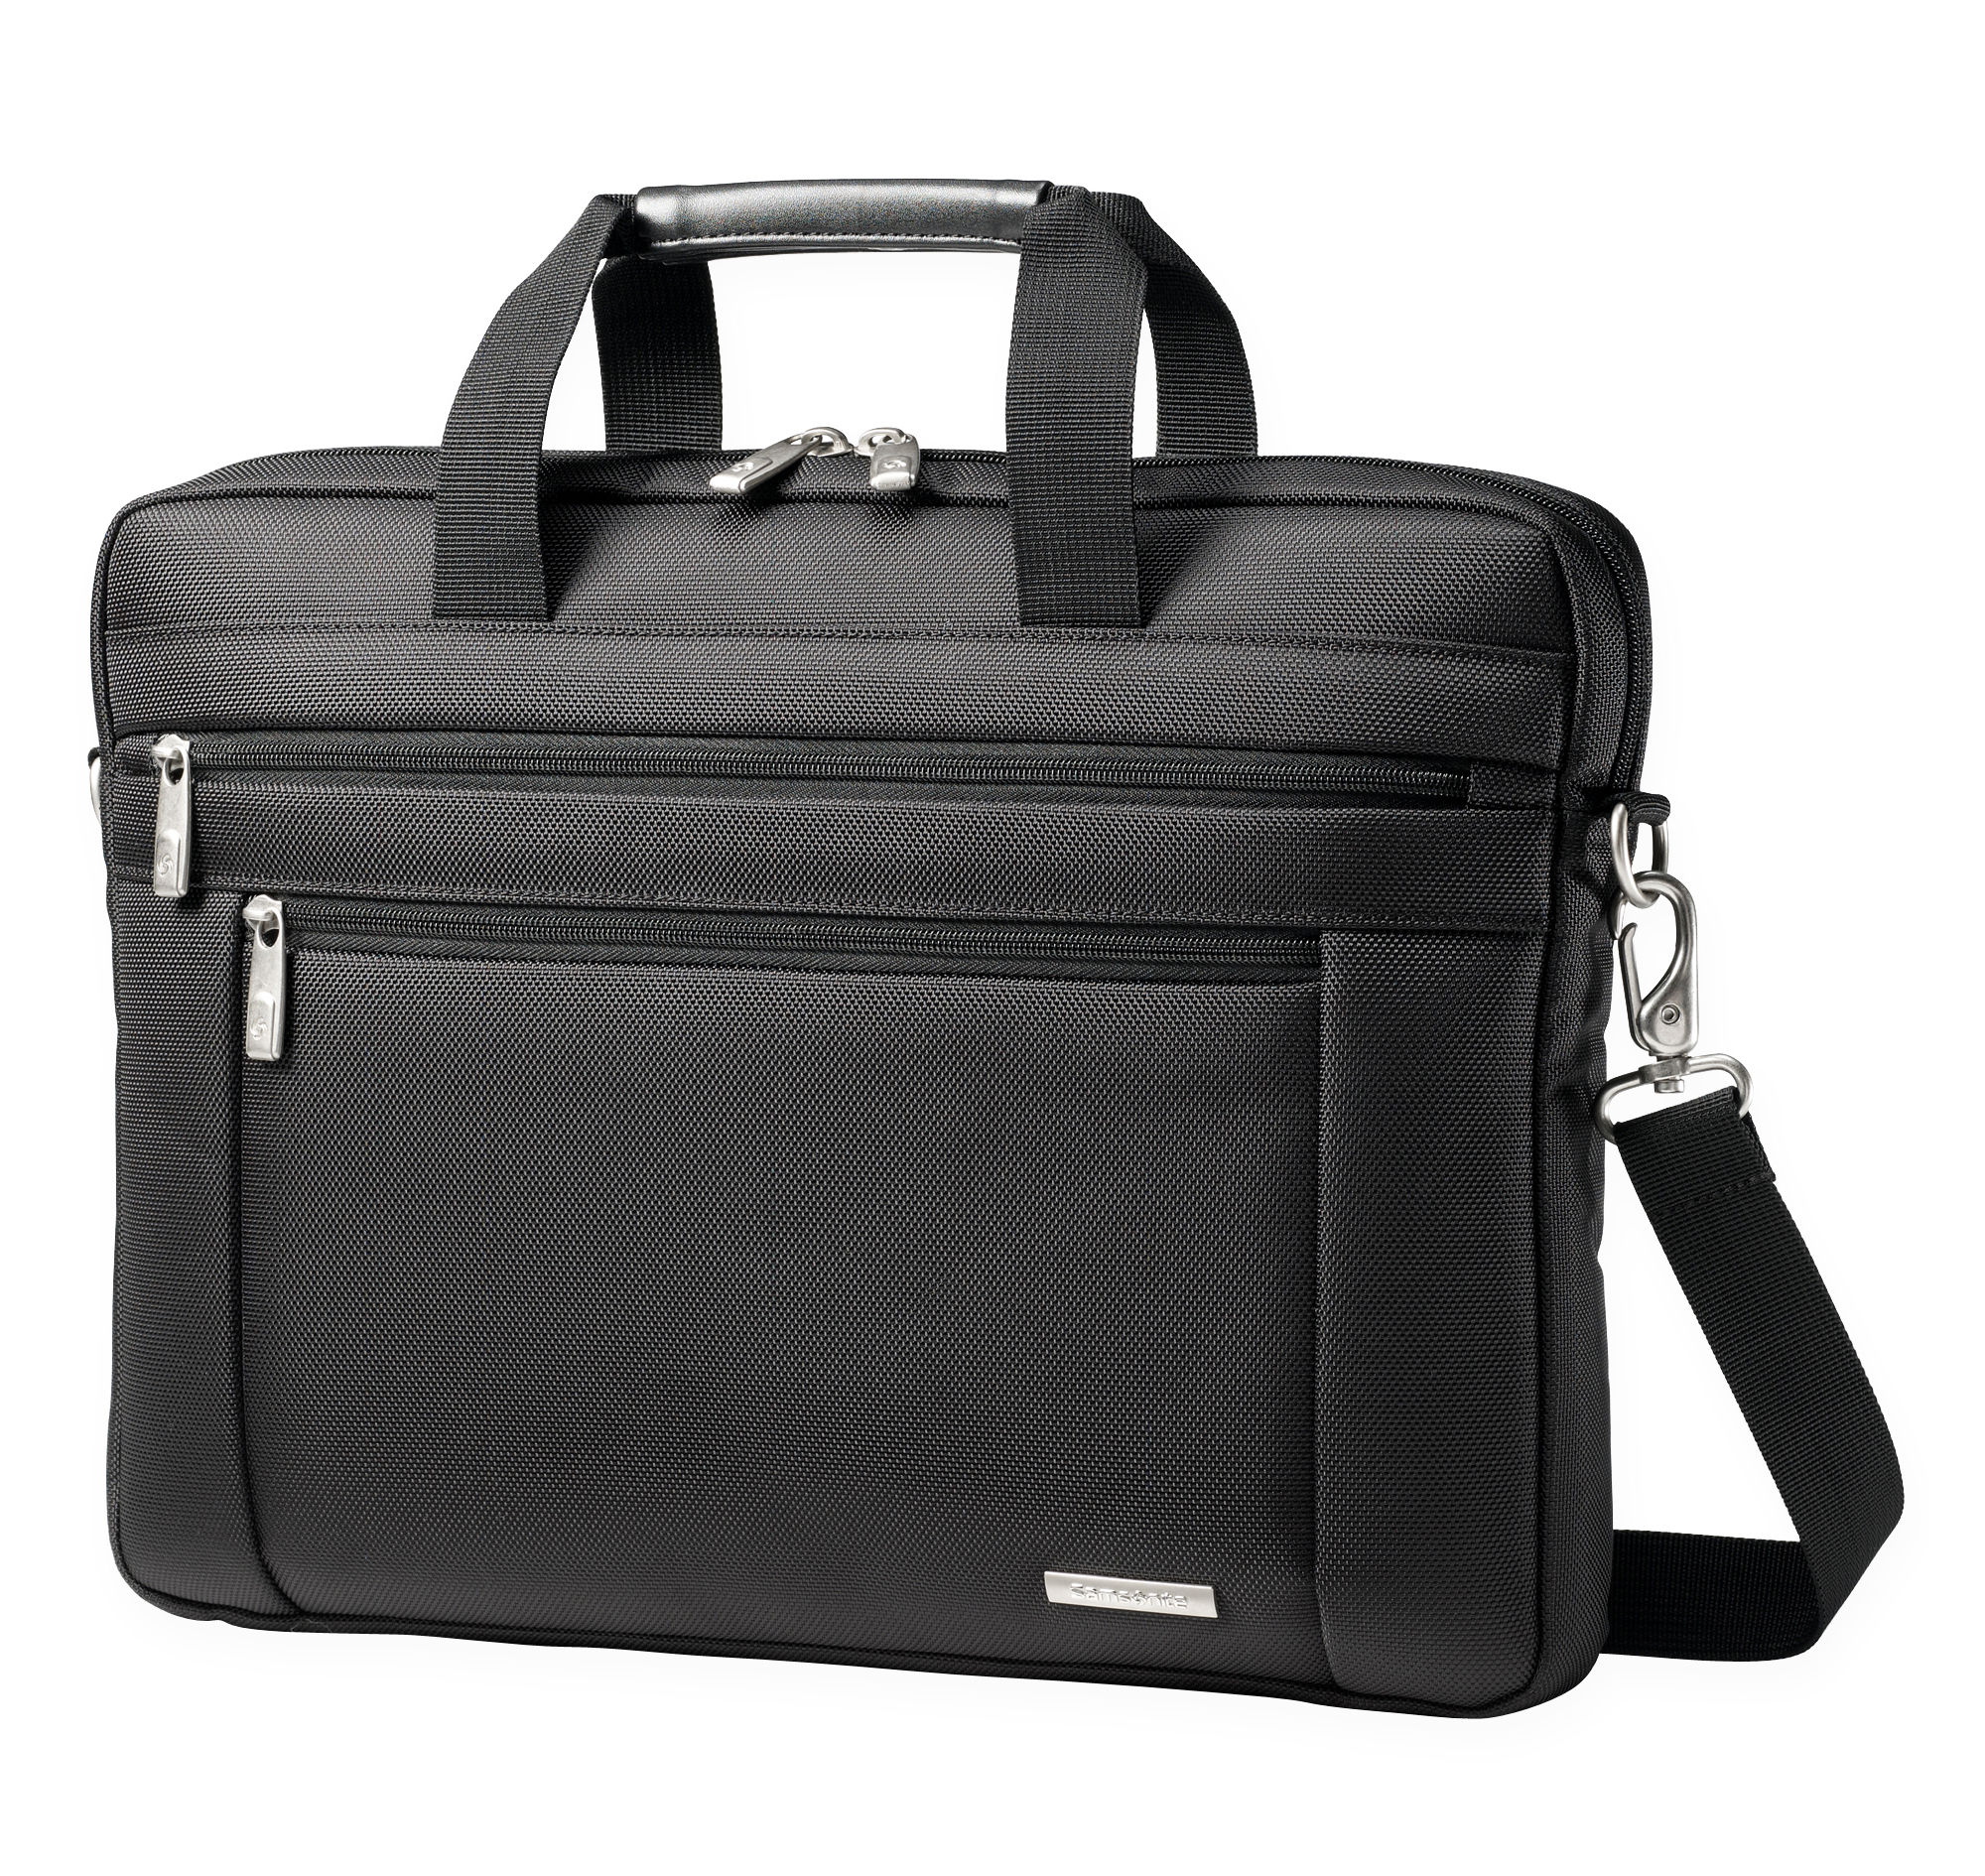 Samsonite Laptop Shuttle